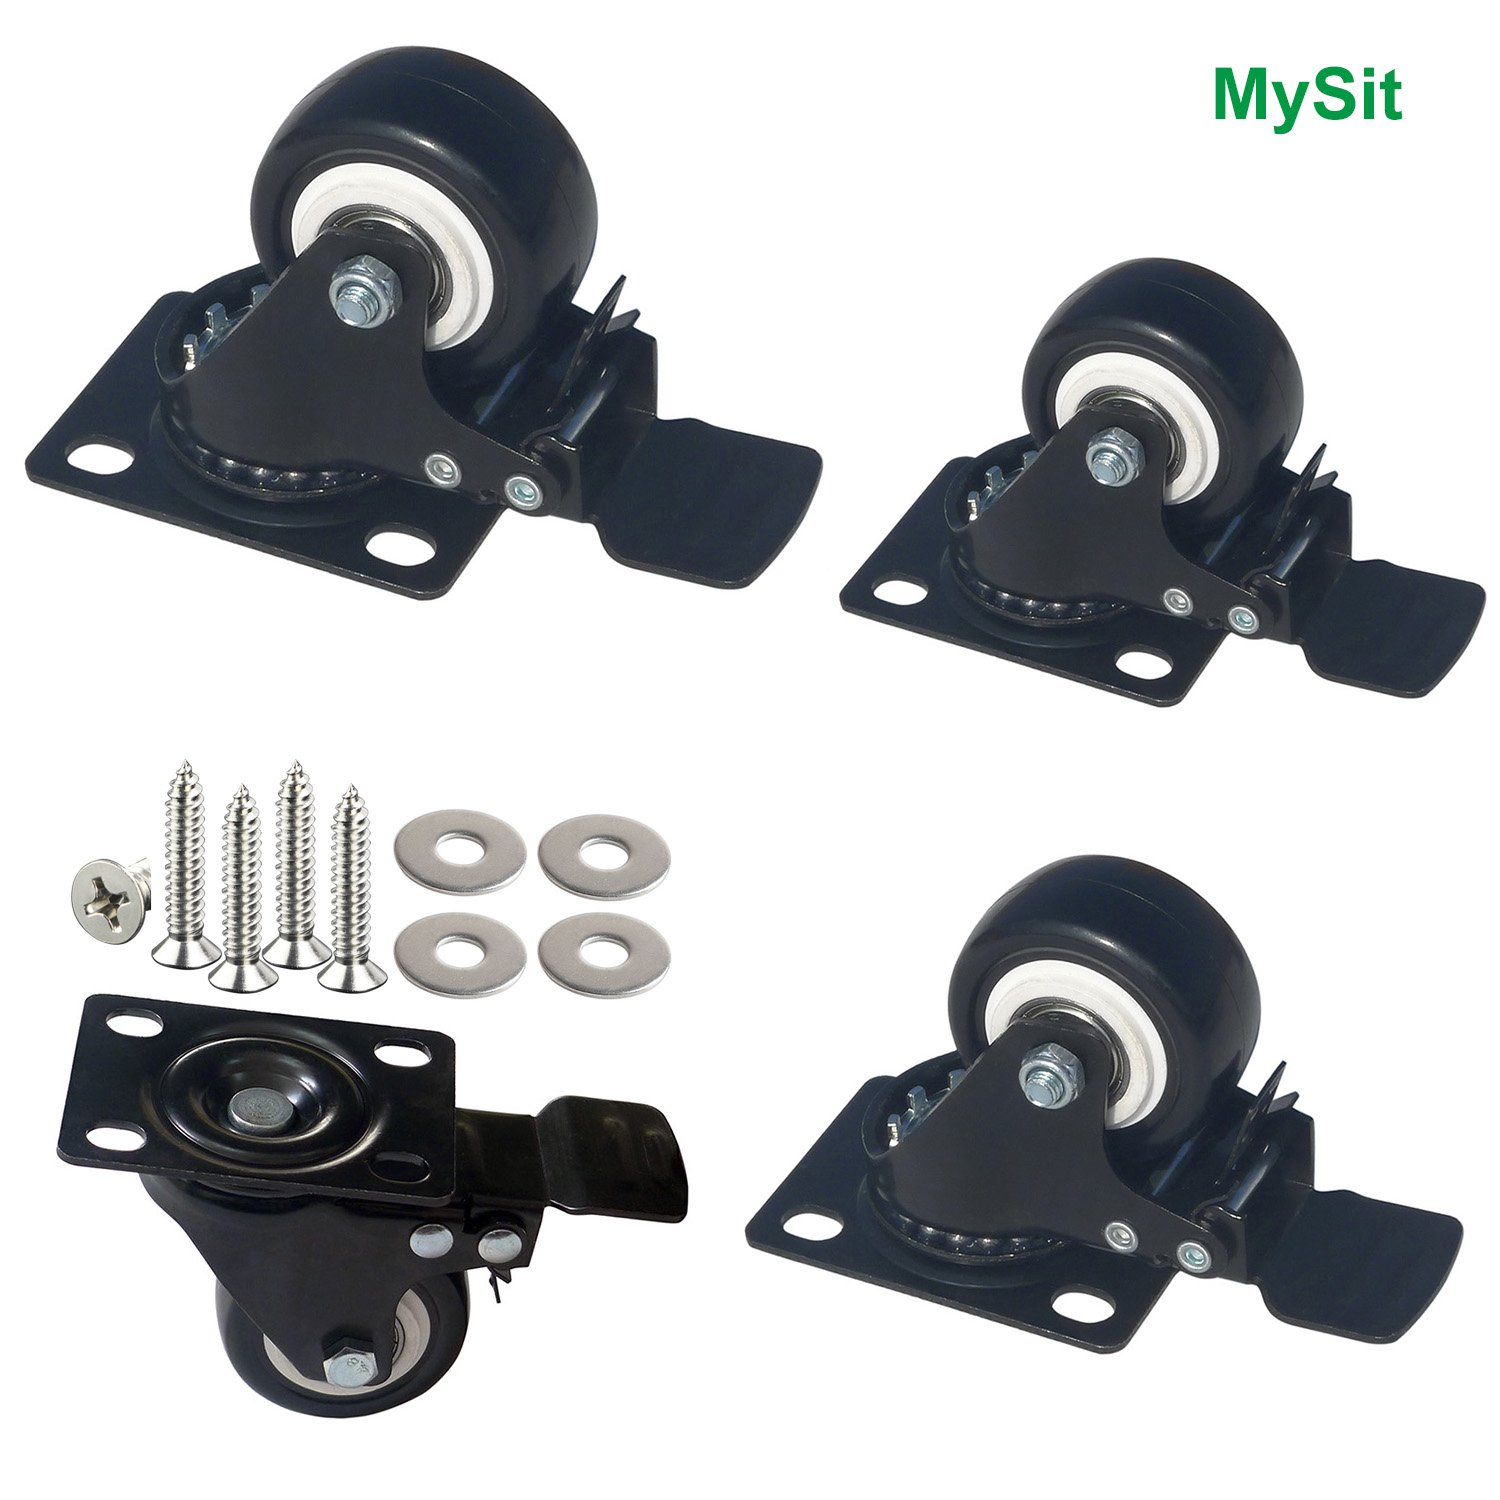 MySit Plate Casters with Brake Lock and Hardwares, 4 Pack 2 Inch Heavy Duty Black Swivel PU Rubber Brake Caster Wheels (Caster_2in_Brake)